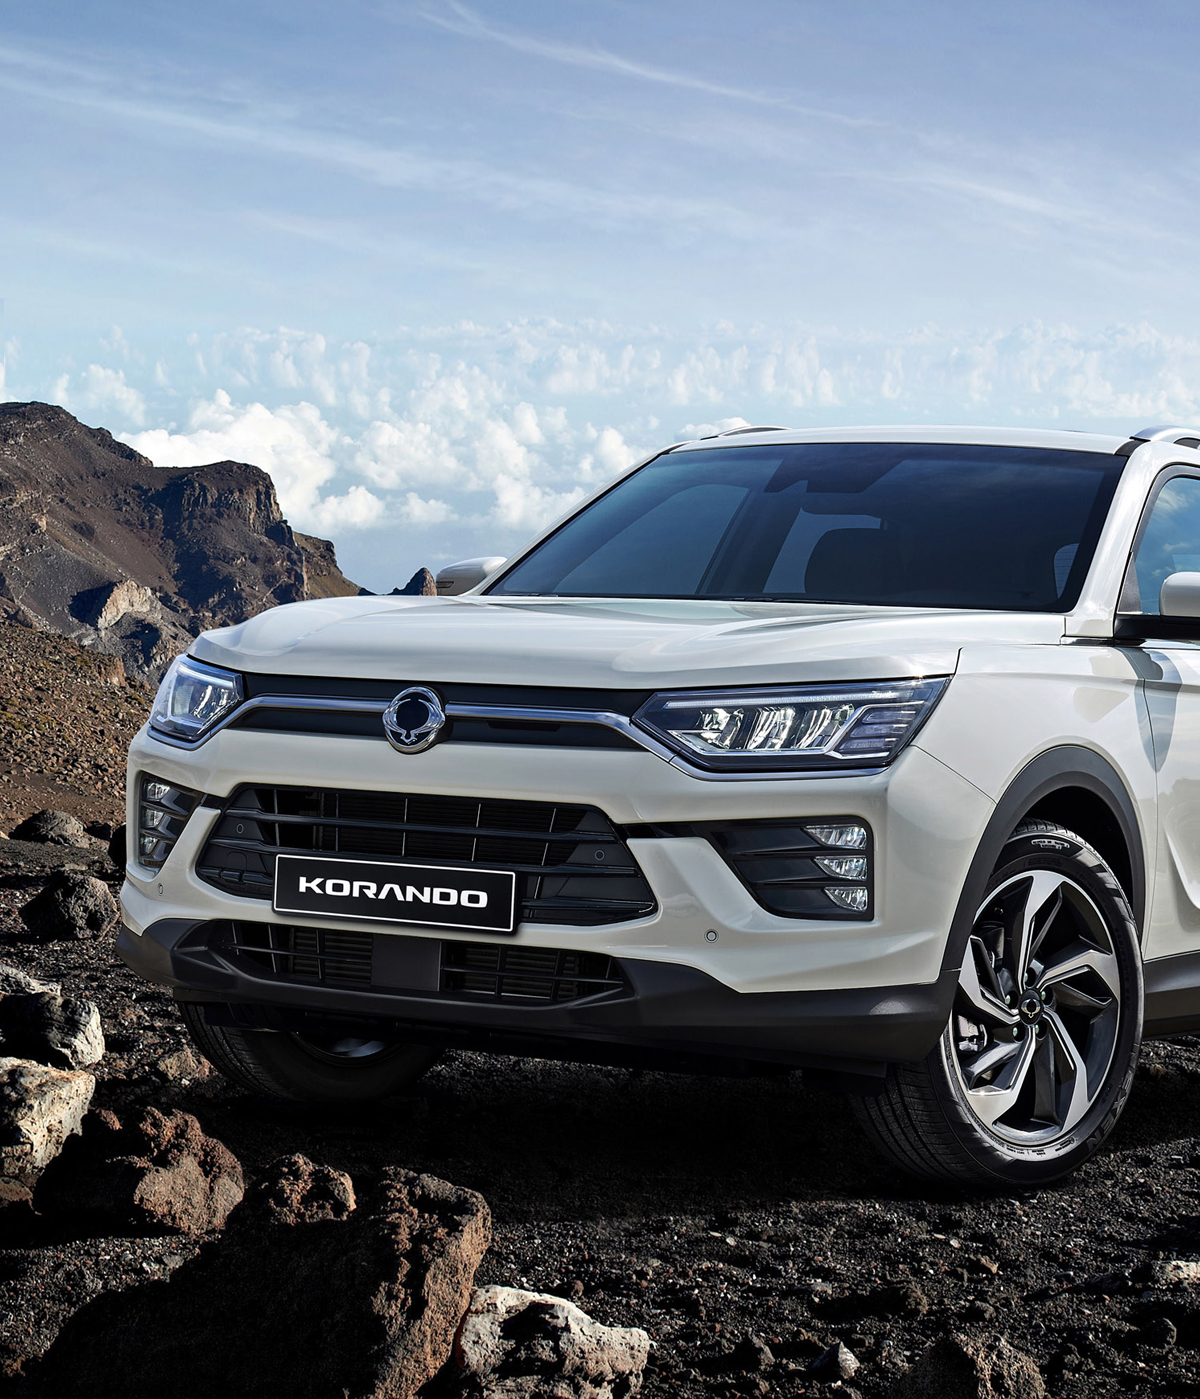 SsangYong at CCR Motor Co